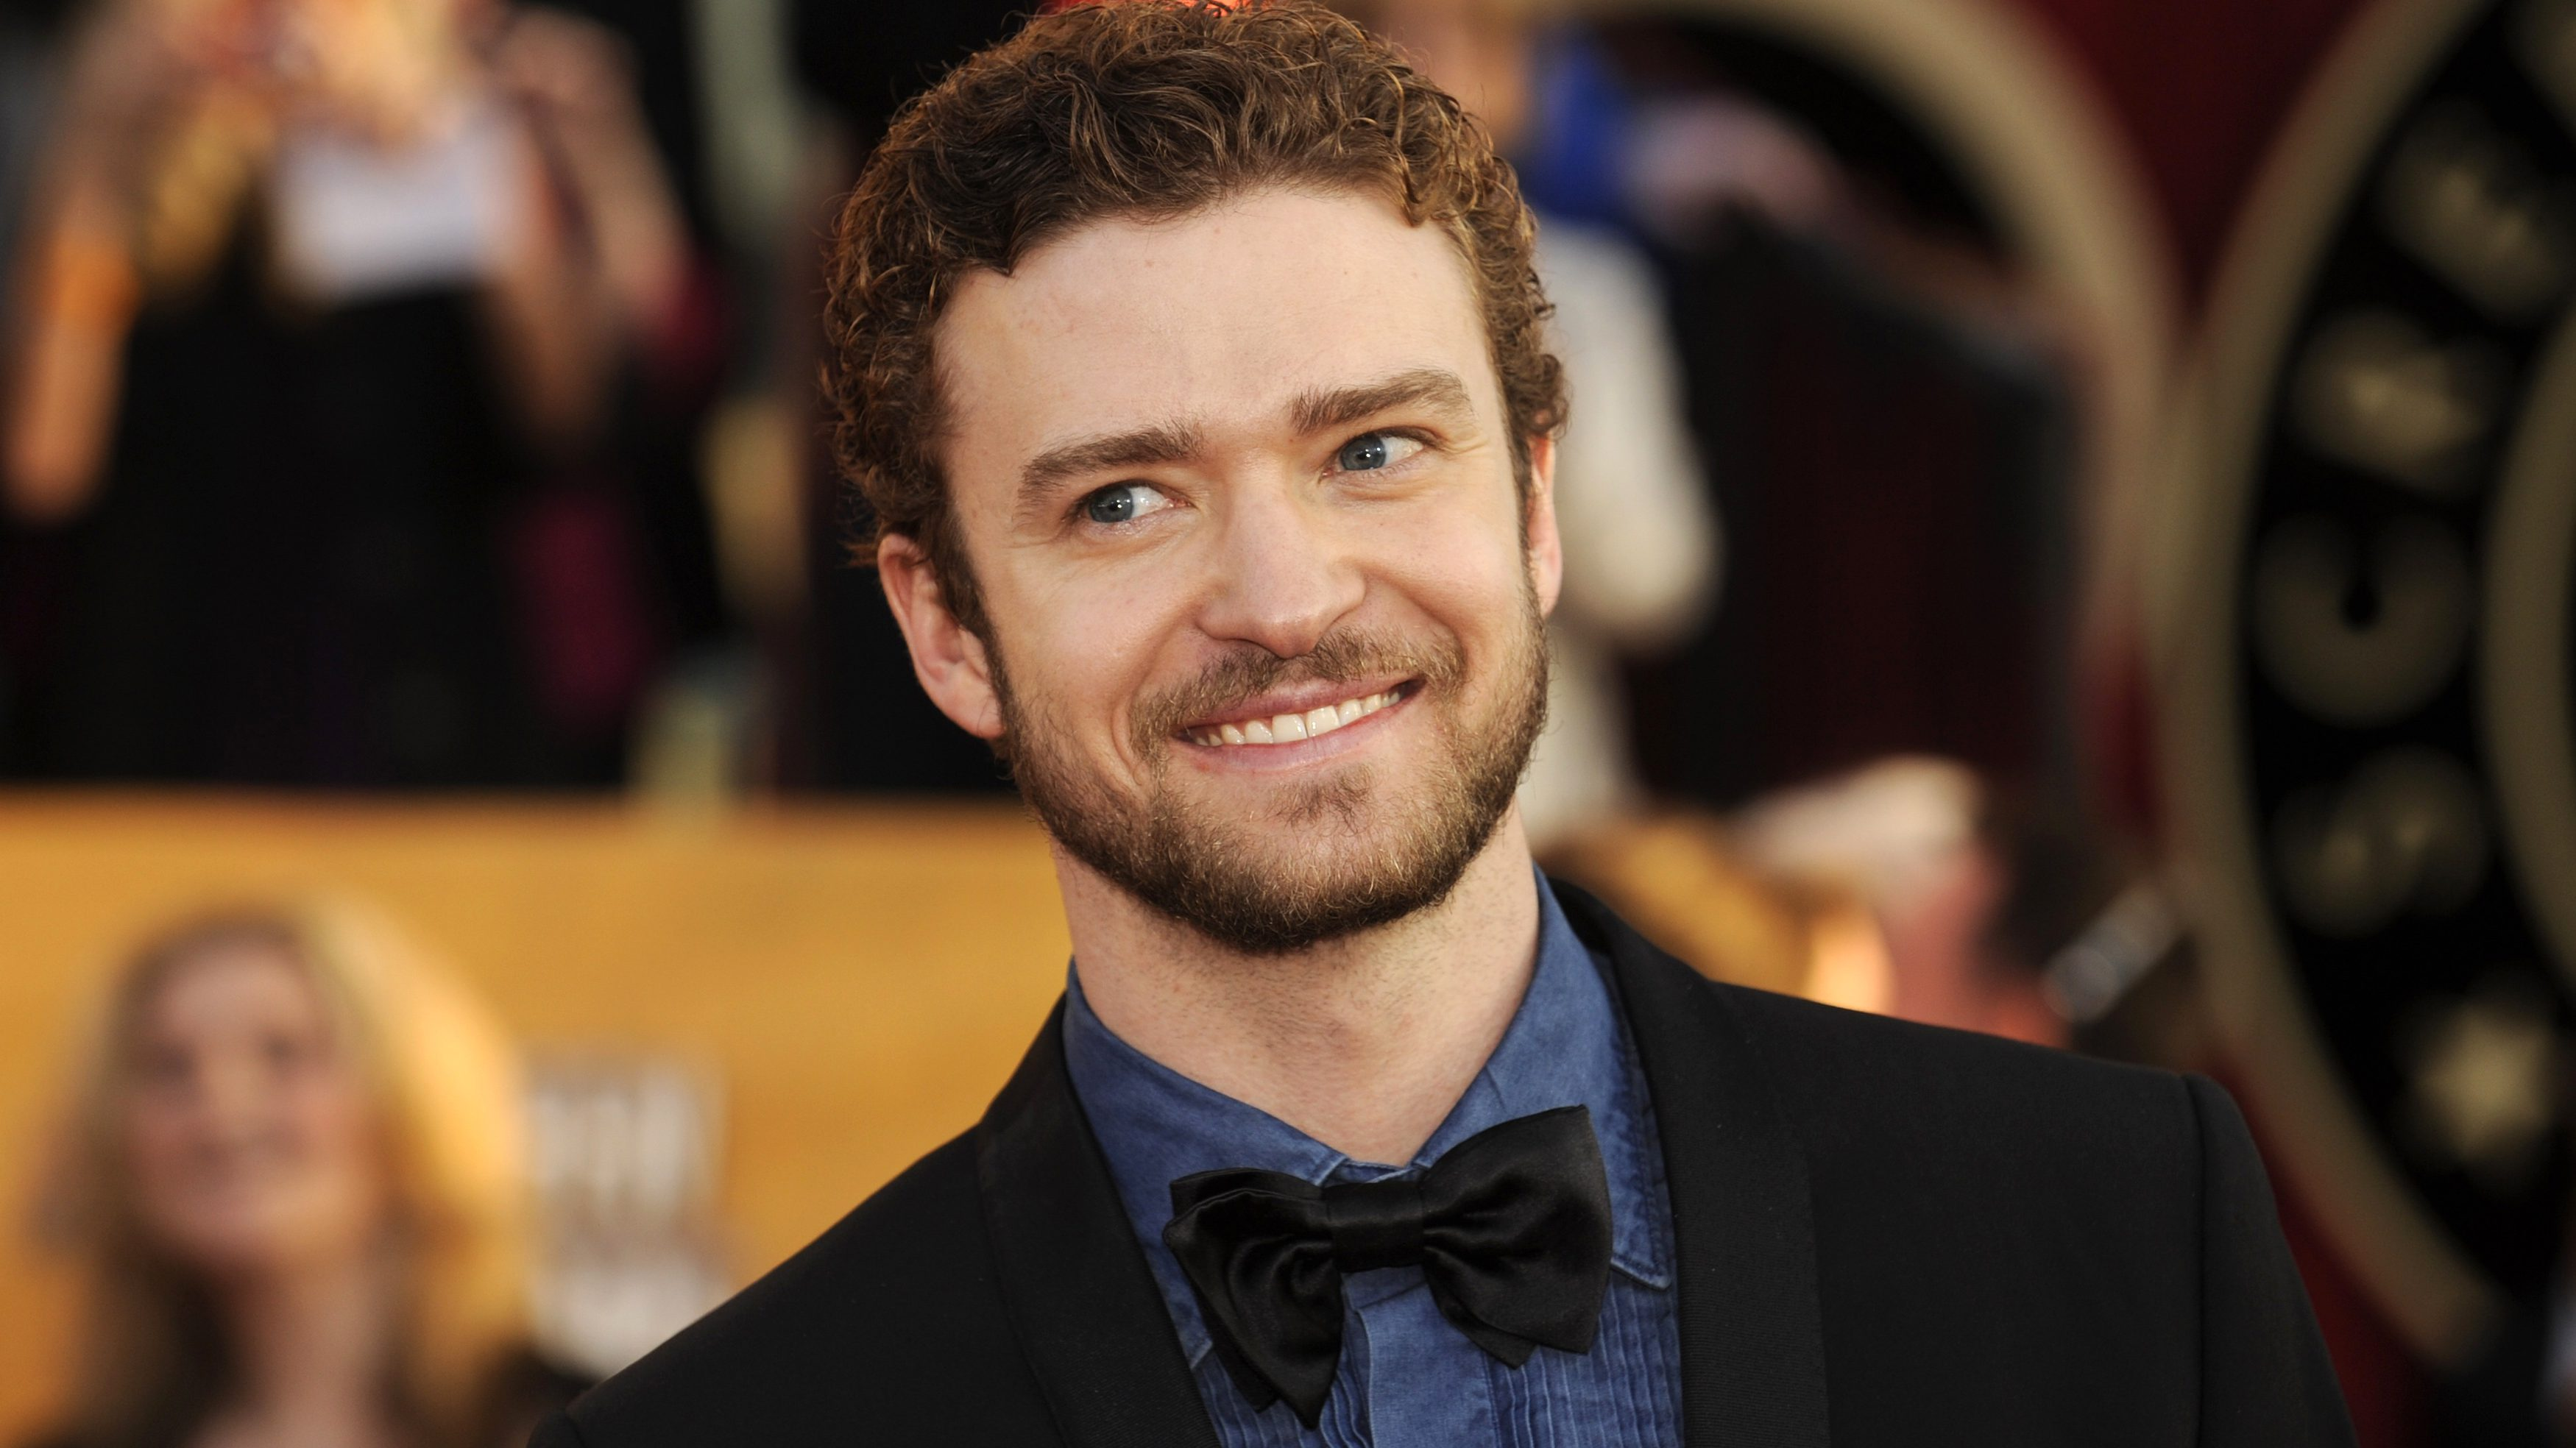 Singer Justin Timberlake arrives at the 16th annual Screen Actors Guild Awards in Los Angeles January 23, 2010.